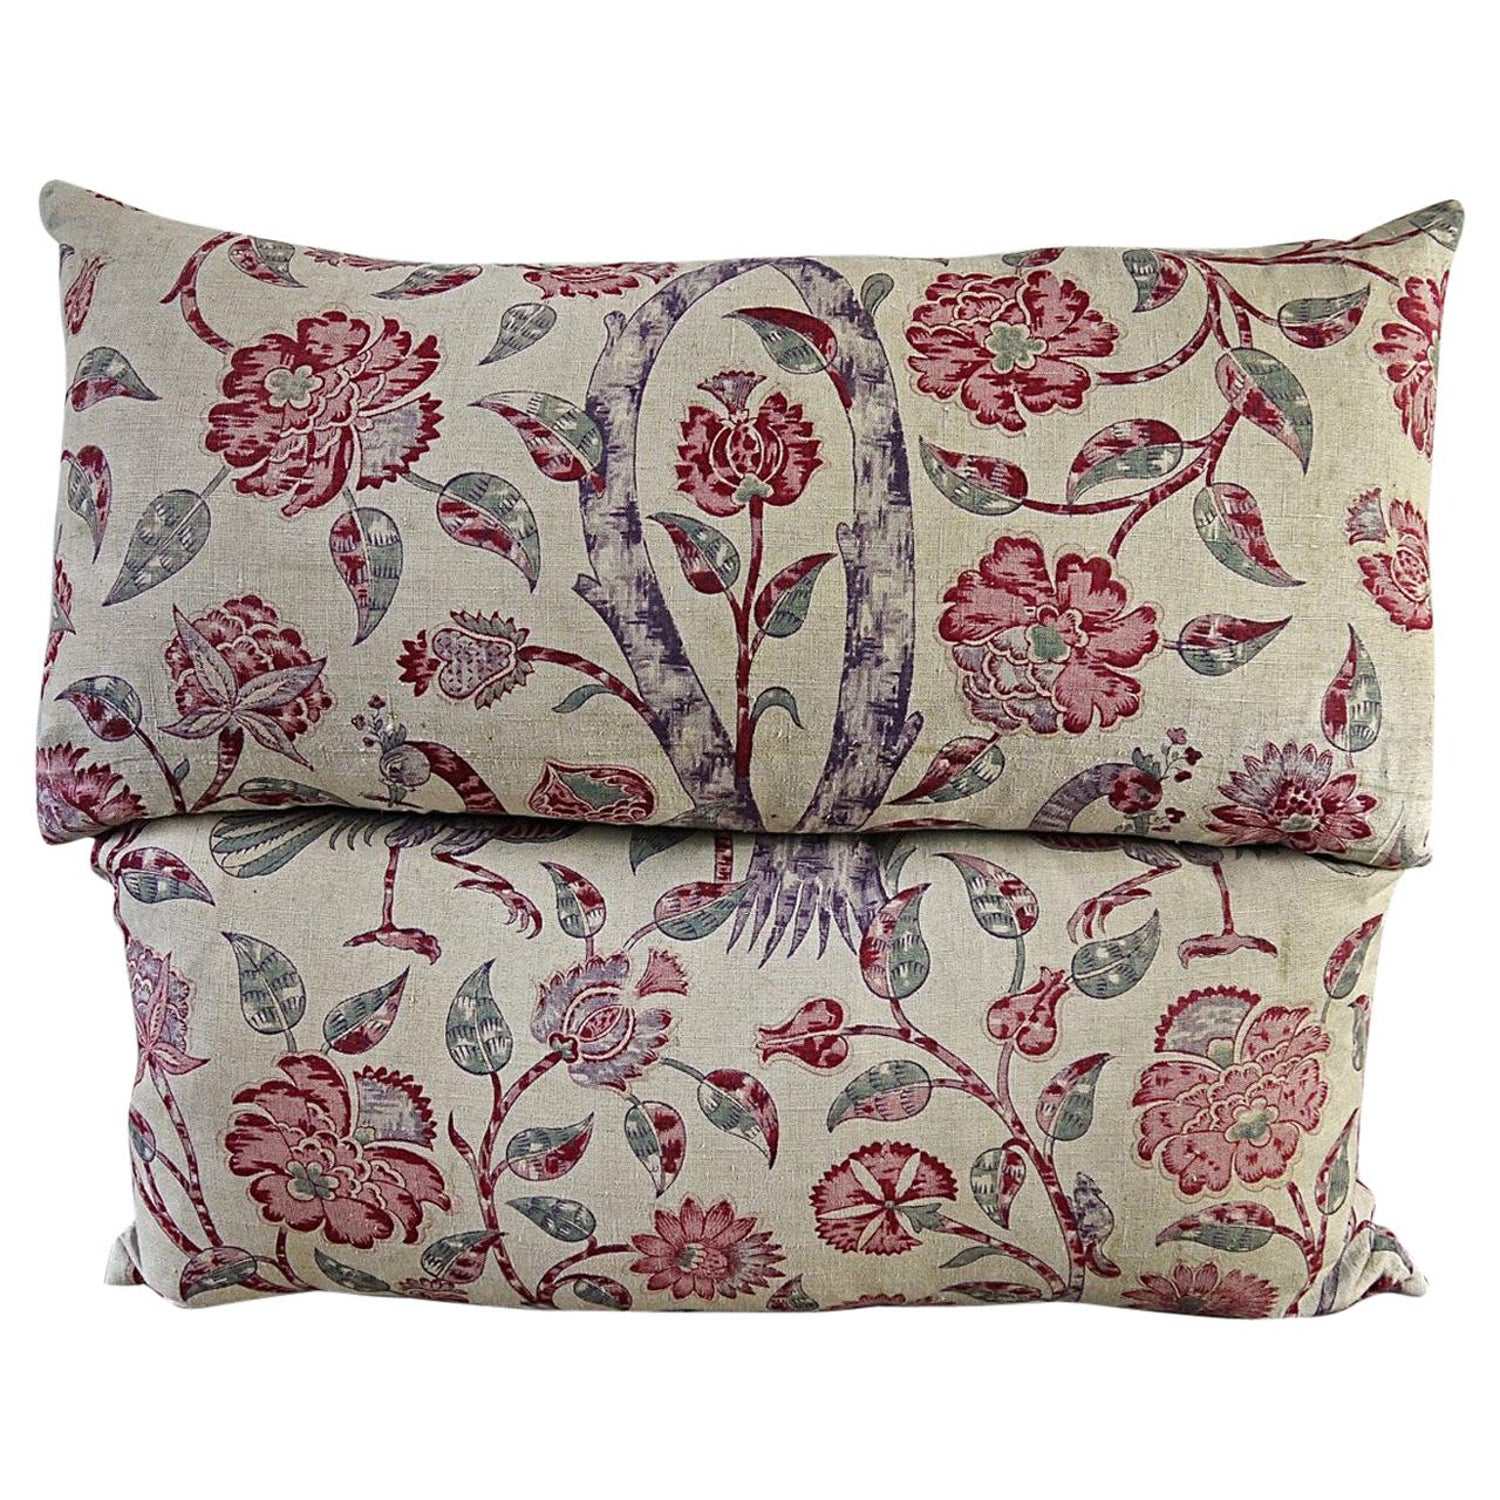 Pair Of Pink Floral Linen Pillows French 19th Century